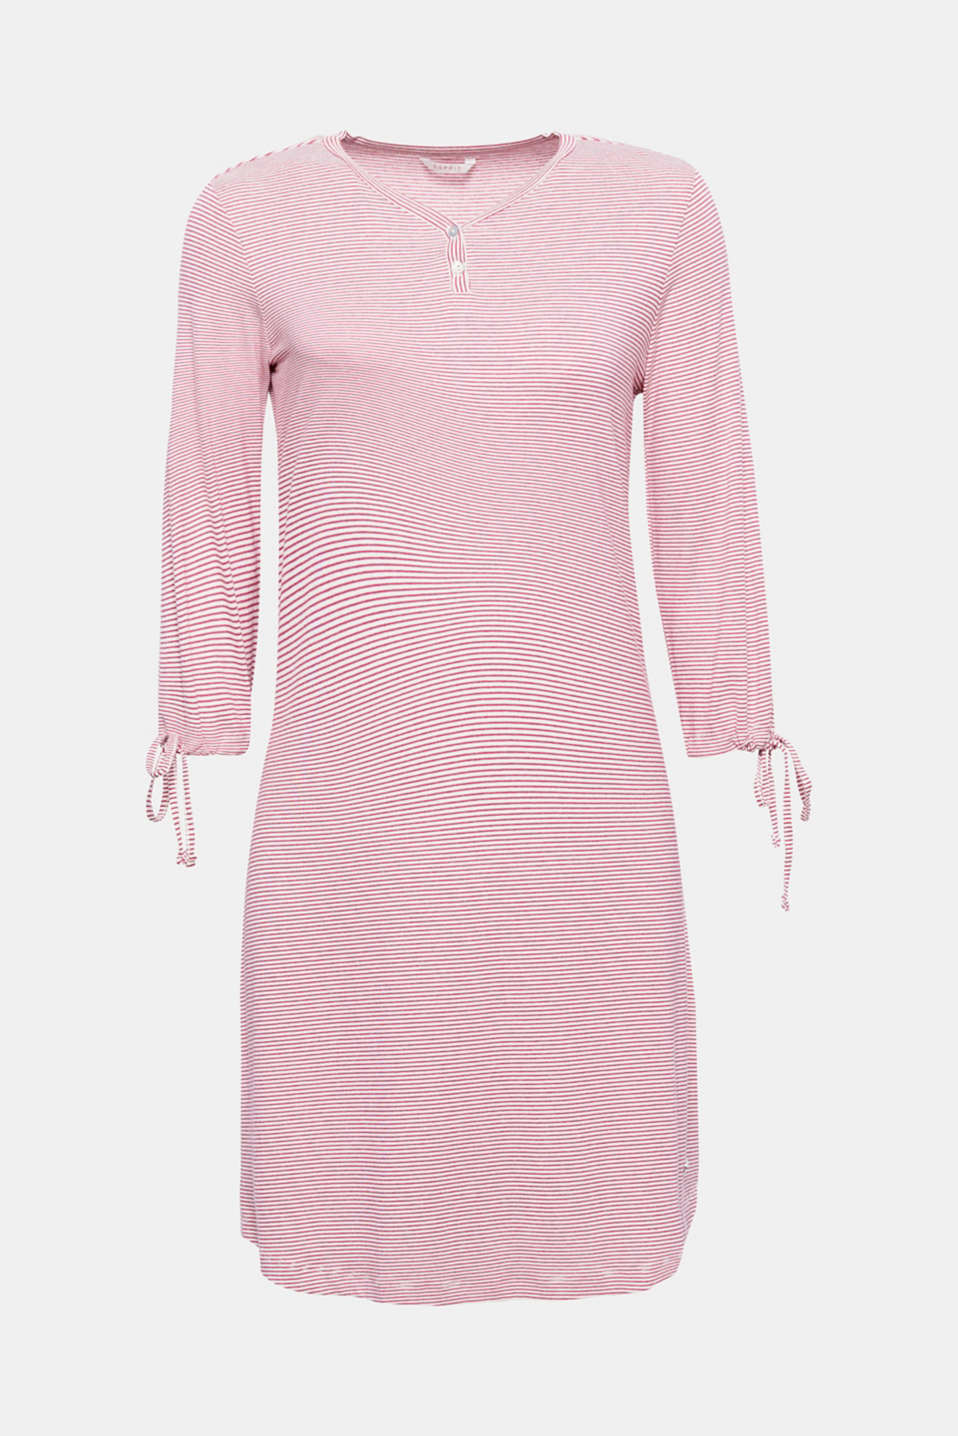 You are sure to feel relaxed in this soft and snug nightshirt with a percentage of stretch for comfort.